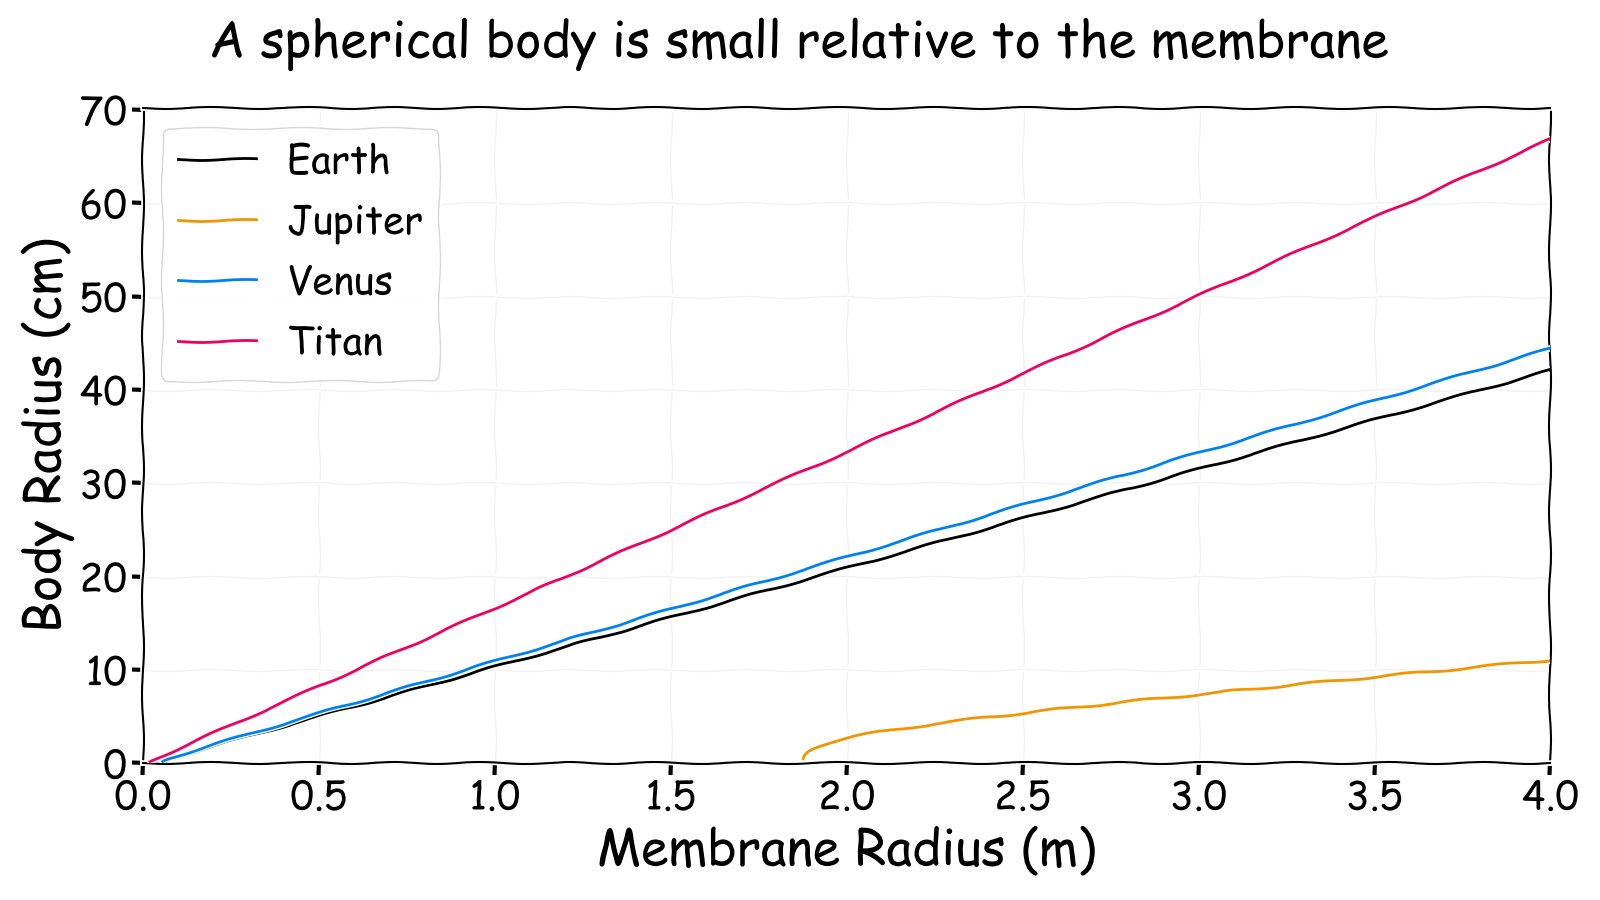 A spherical body is small relative to the membrane